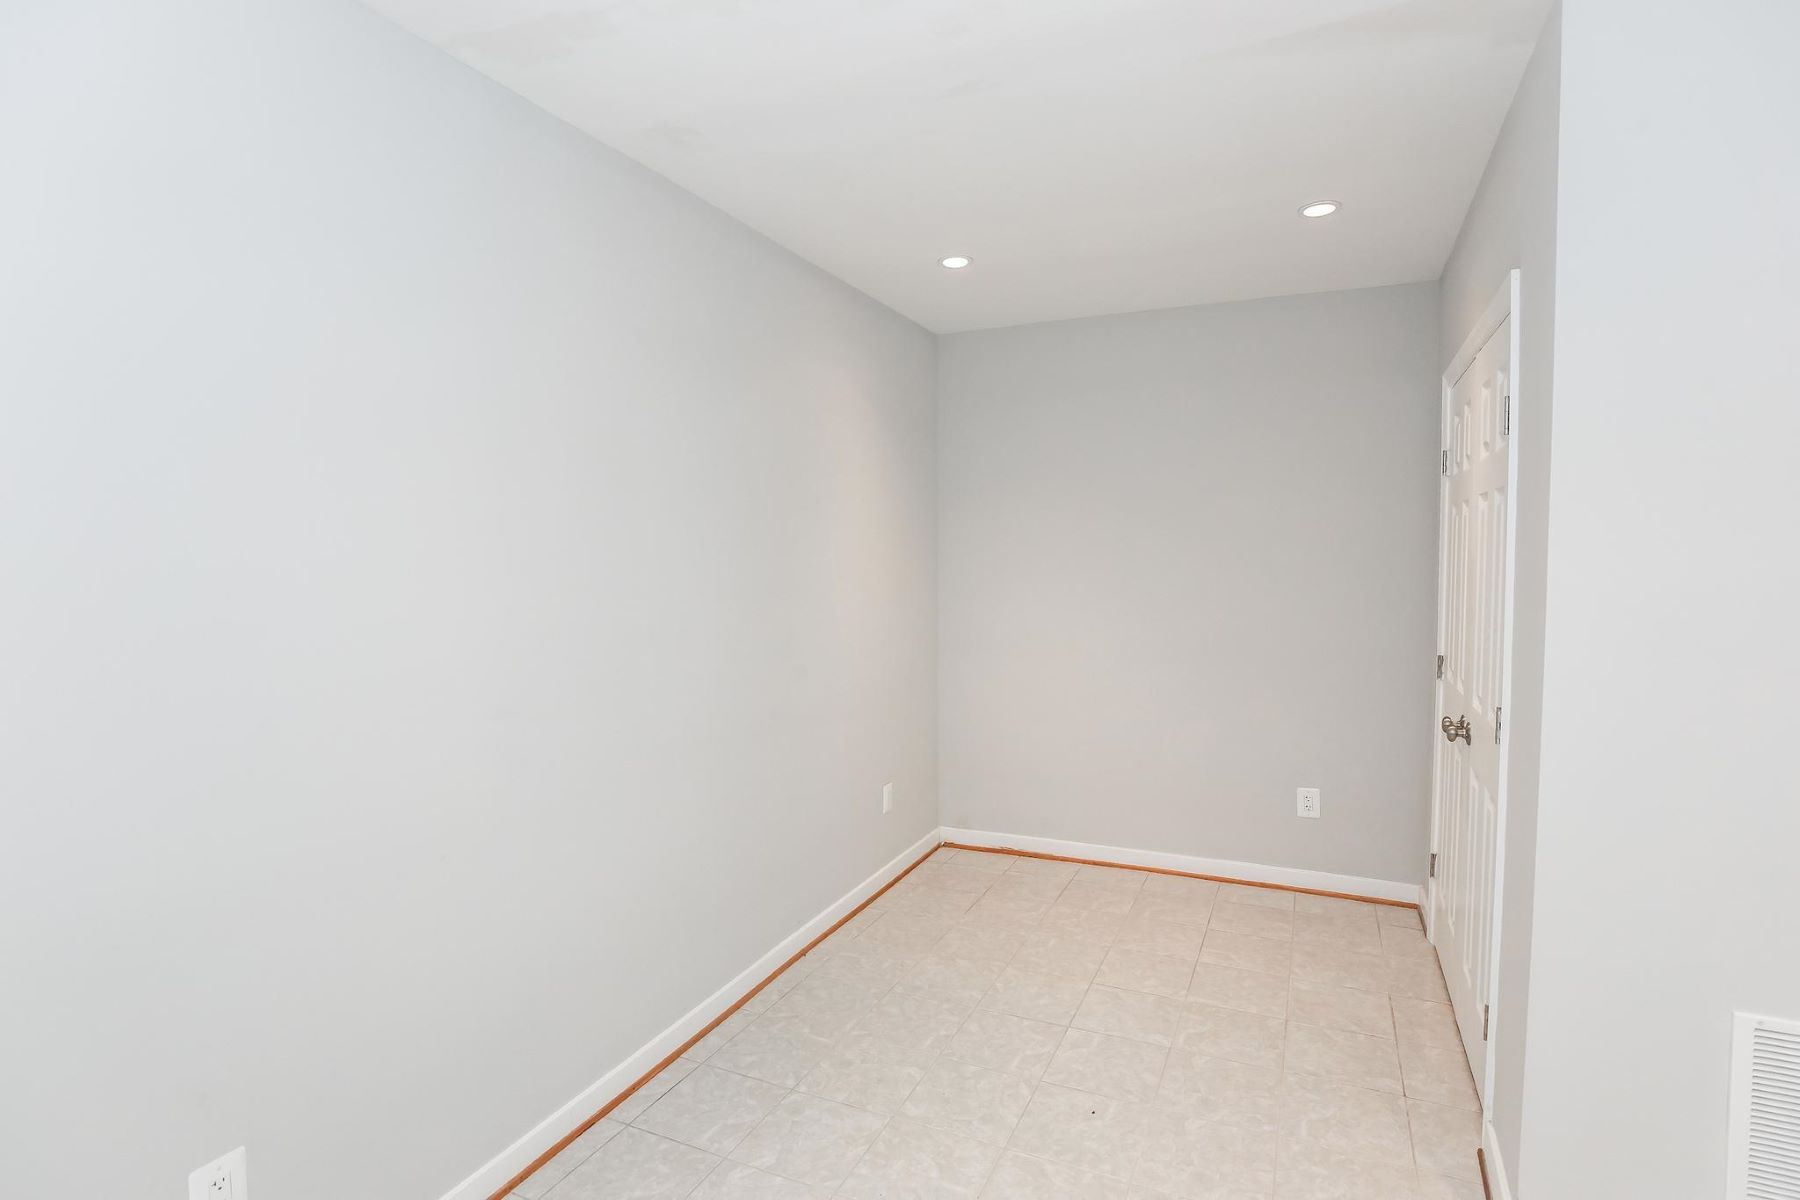 Additional photo for property listing at 1616 6th St Nw #1 1616 6th St Nw #1 Washington, District Of Columbia 20001 United States